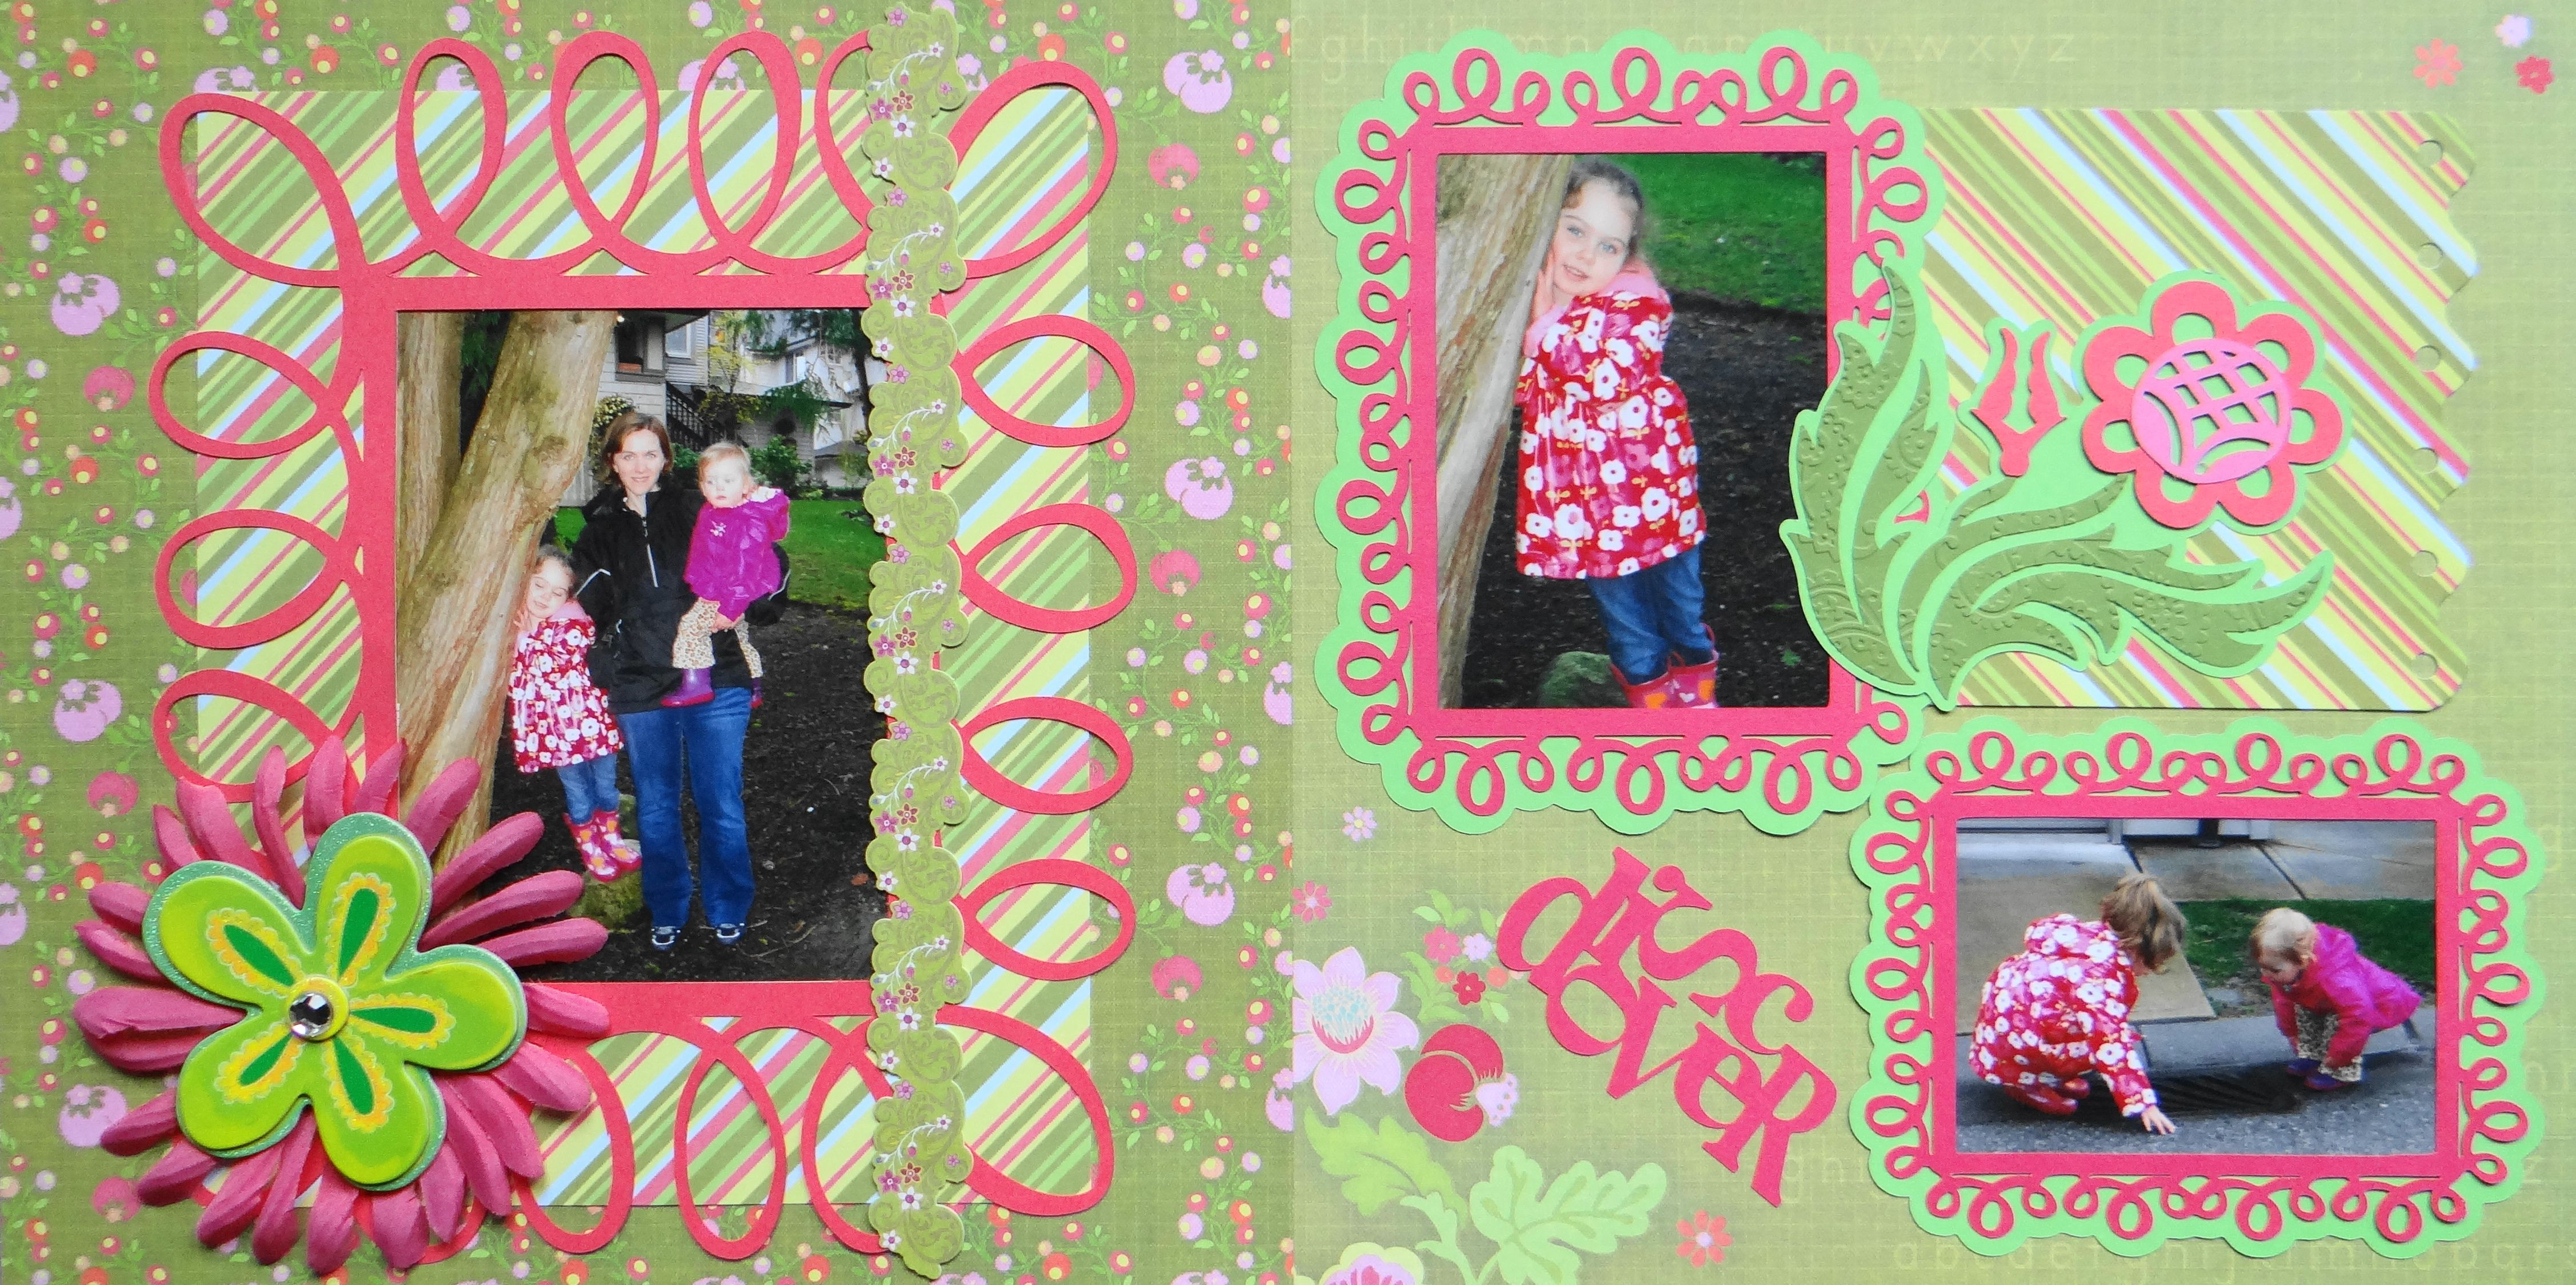 Family scrapbook ideas on pinterest - Scrapbook Page Discover Walking With Mommy 2 Page Girl Layout With Flowers